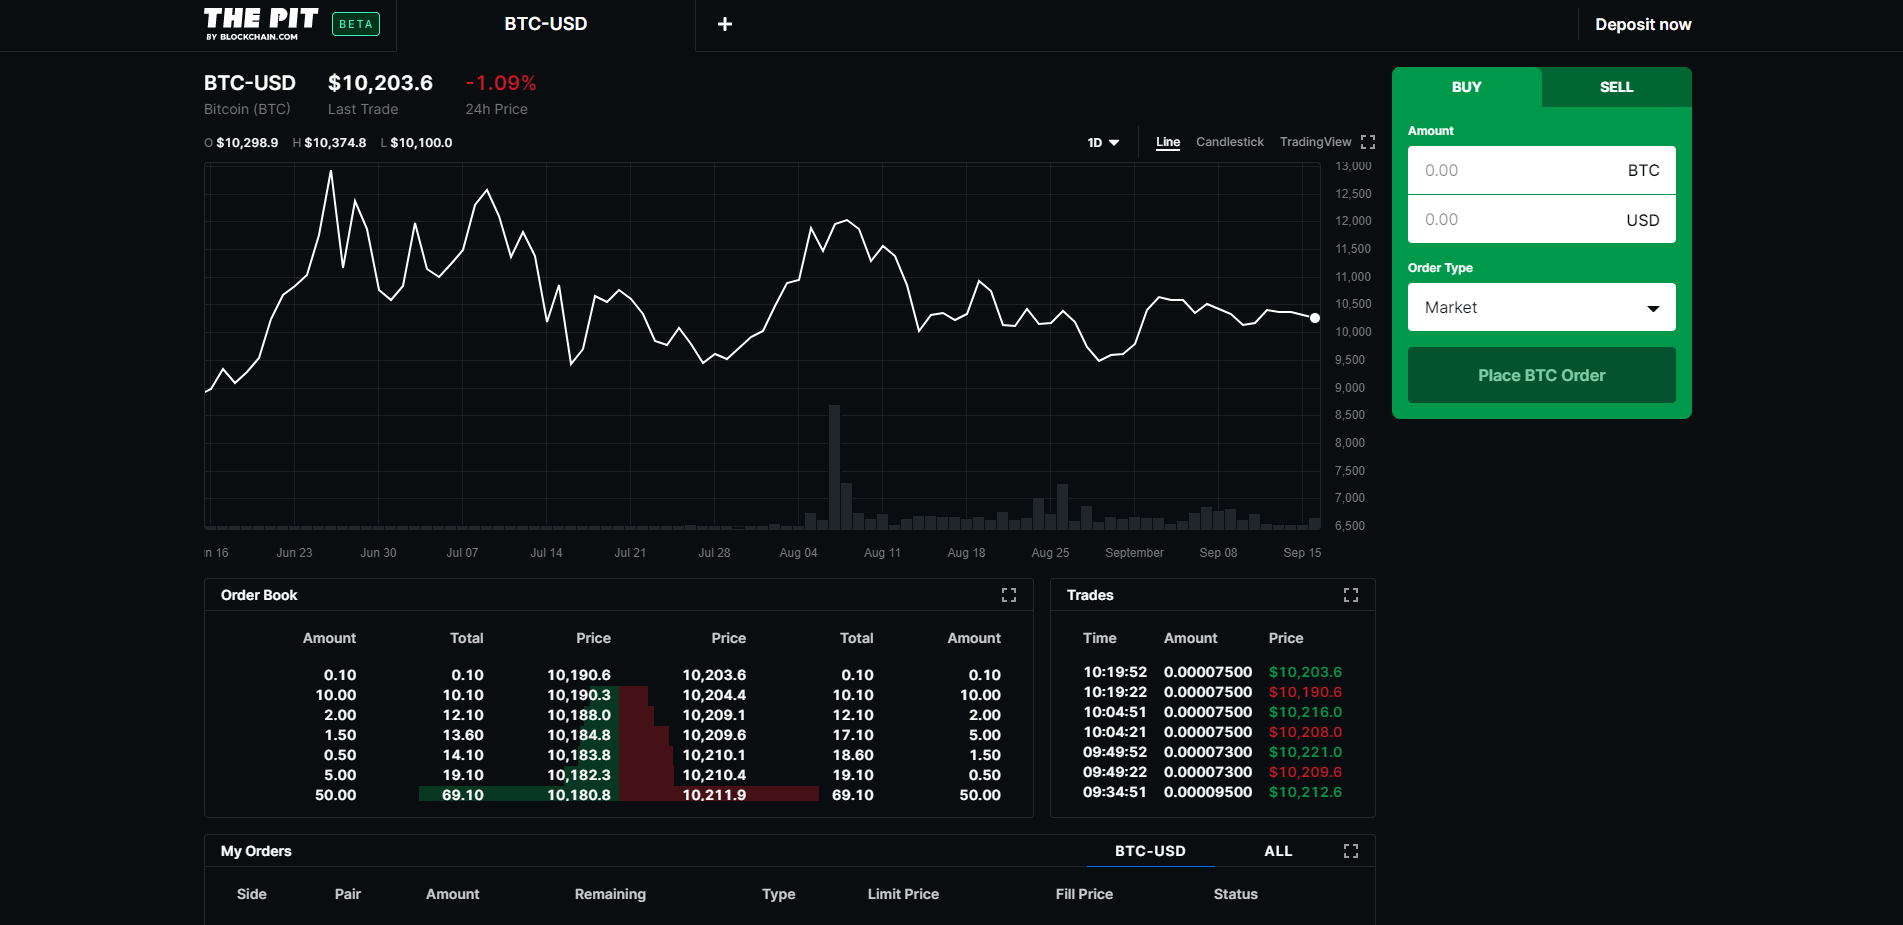 The Pit Trading View